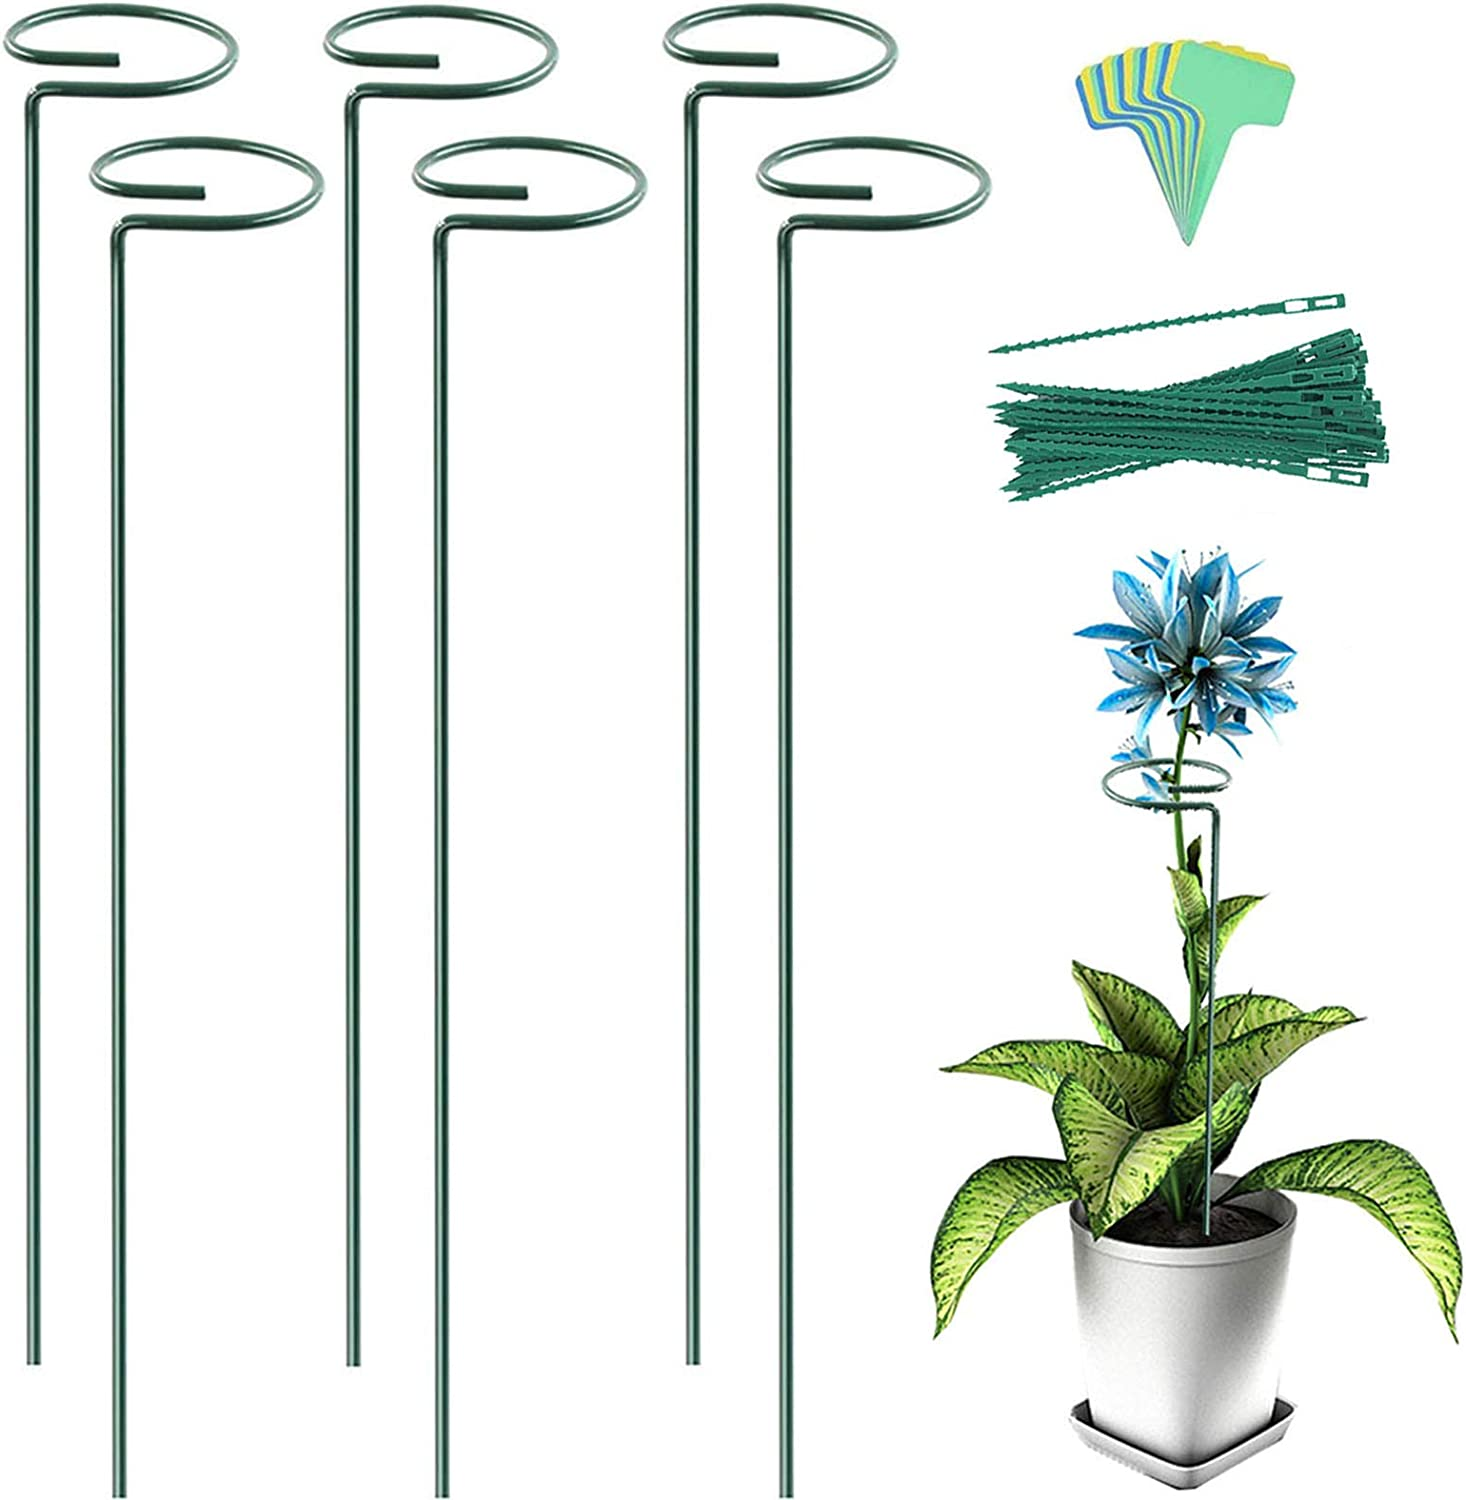 YEAJON 6 Pack Plant Support Stakes with 20 pcs Plant Labels, Garden Metal Single Stem Plant Cage Support Ring for Amaryllis Flower Tomatoes Orchid Lily Peony Rose Hydrangea(15.8inch)